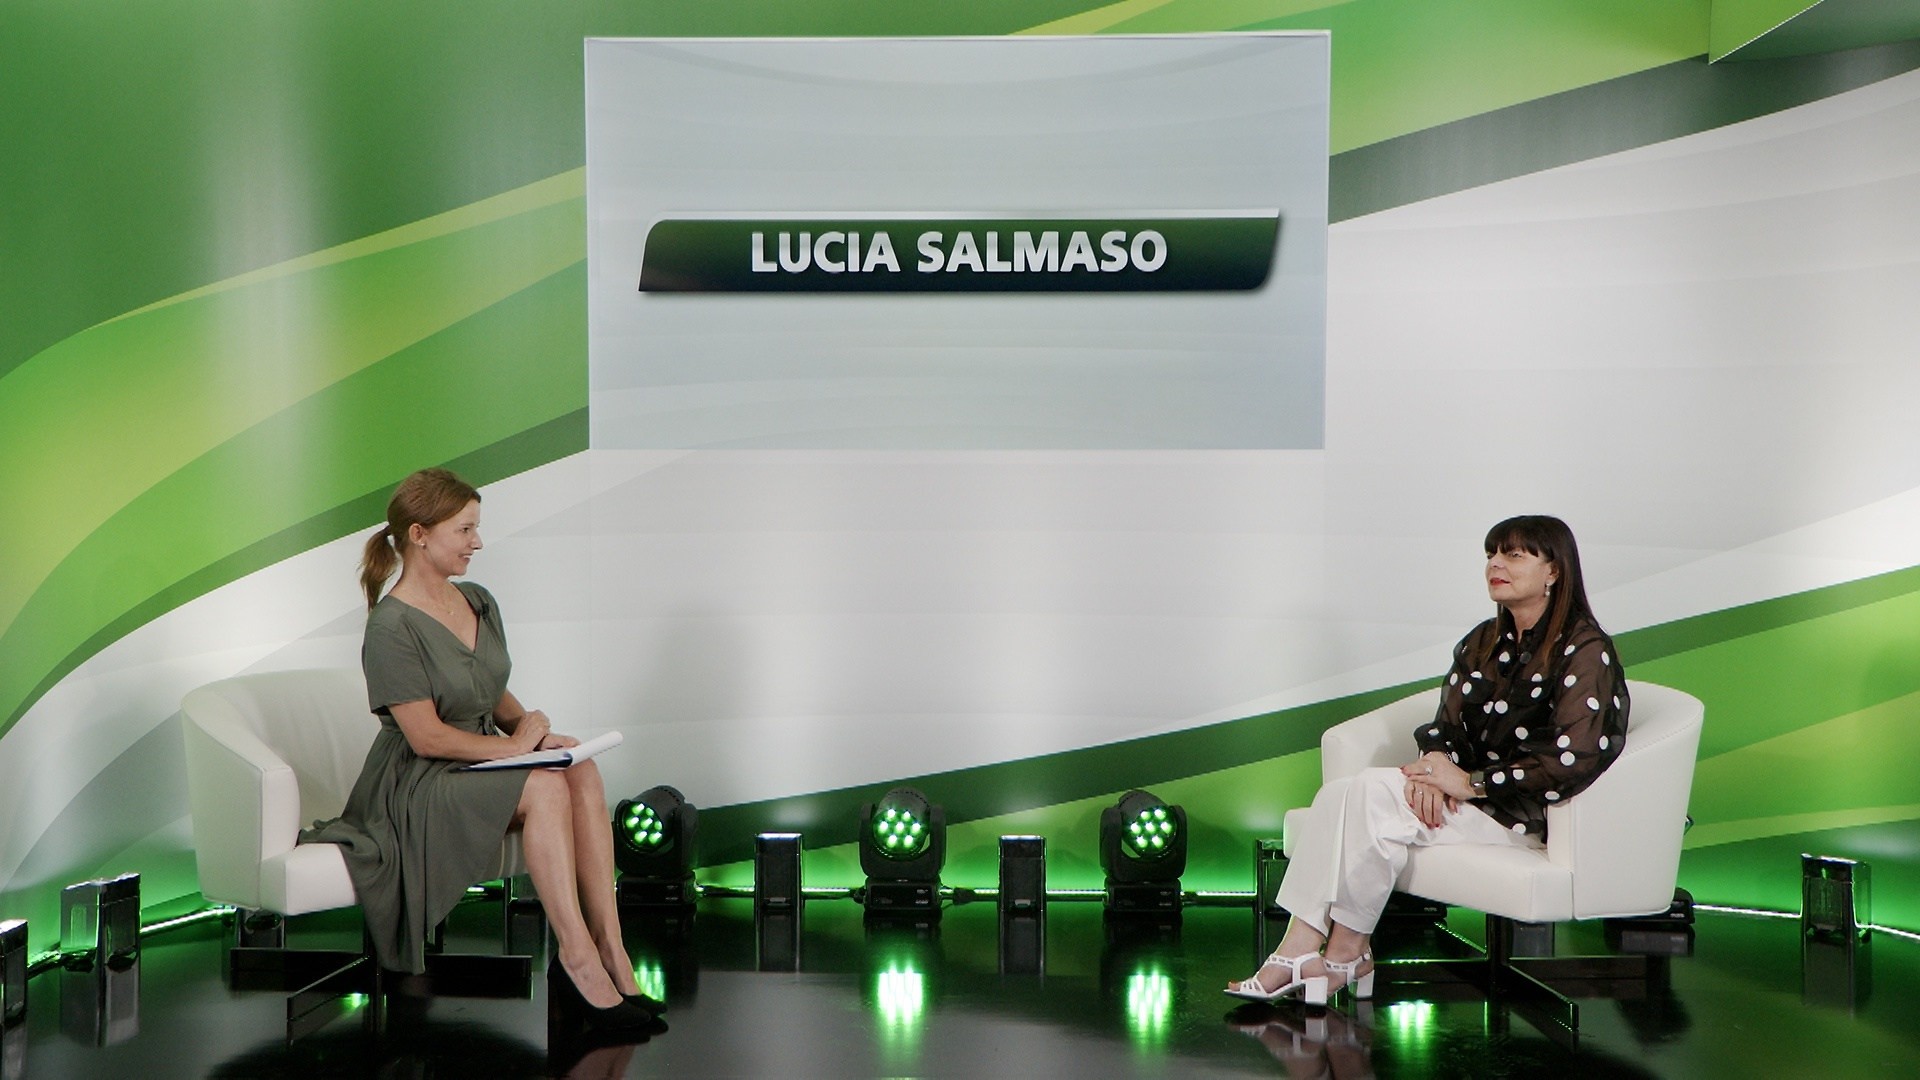 Exclusive BKT Network Interview With Lucia Salmaso